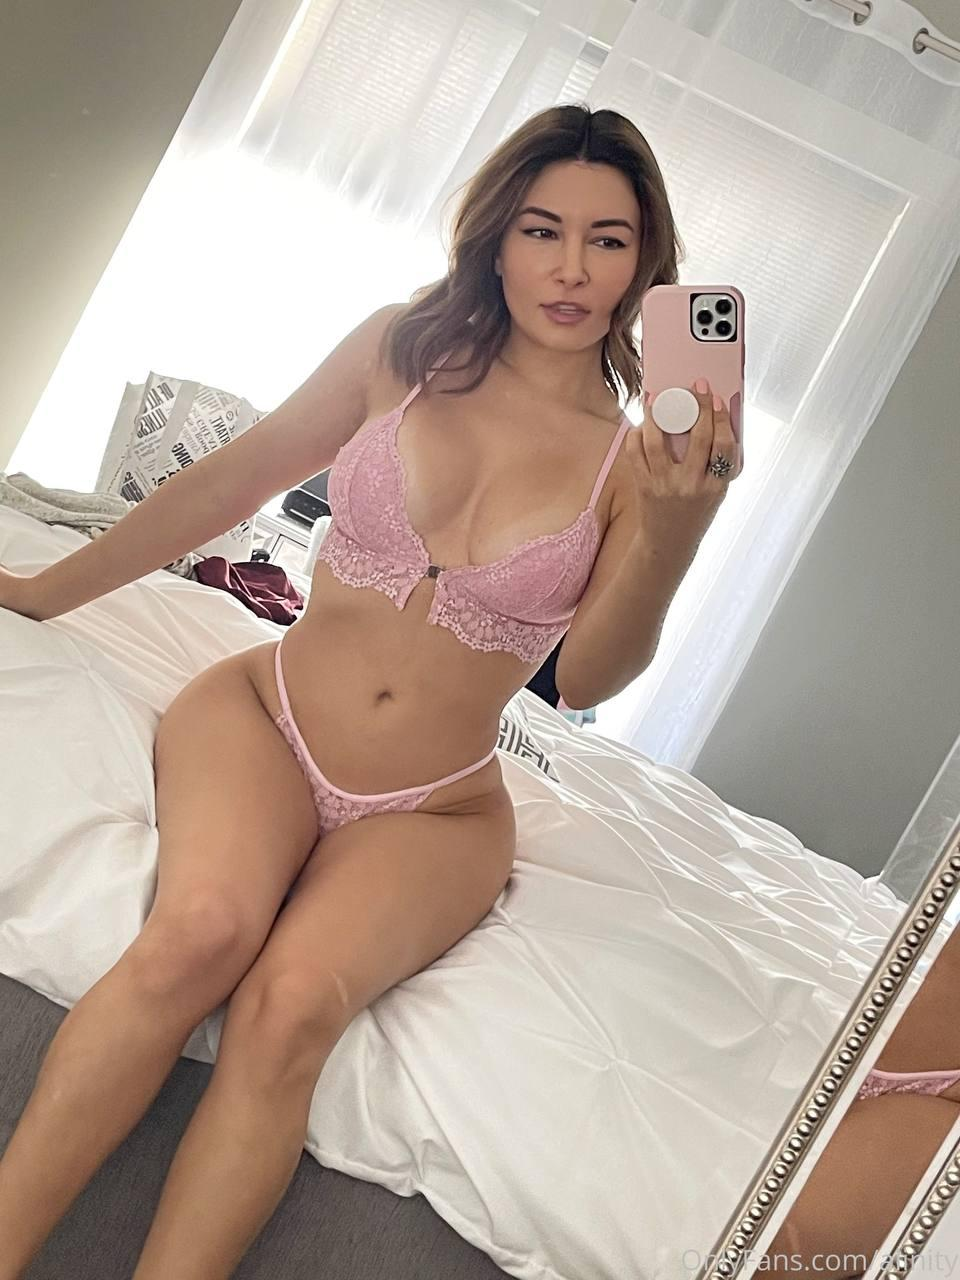 Alinity Sexy Lingerie Strip Onlyfans Video Leaked